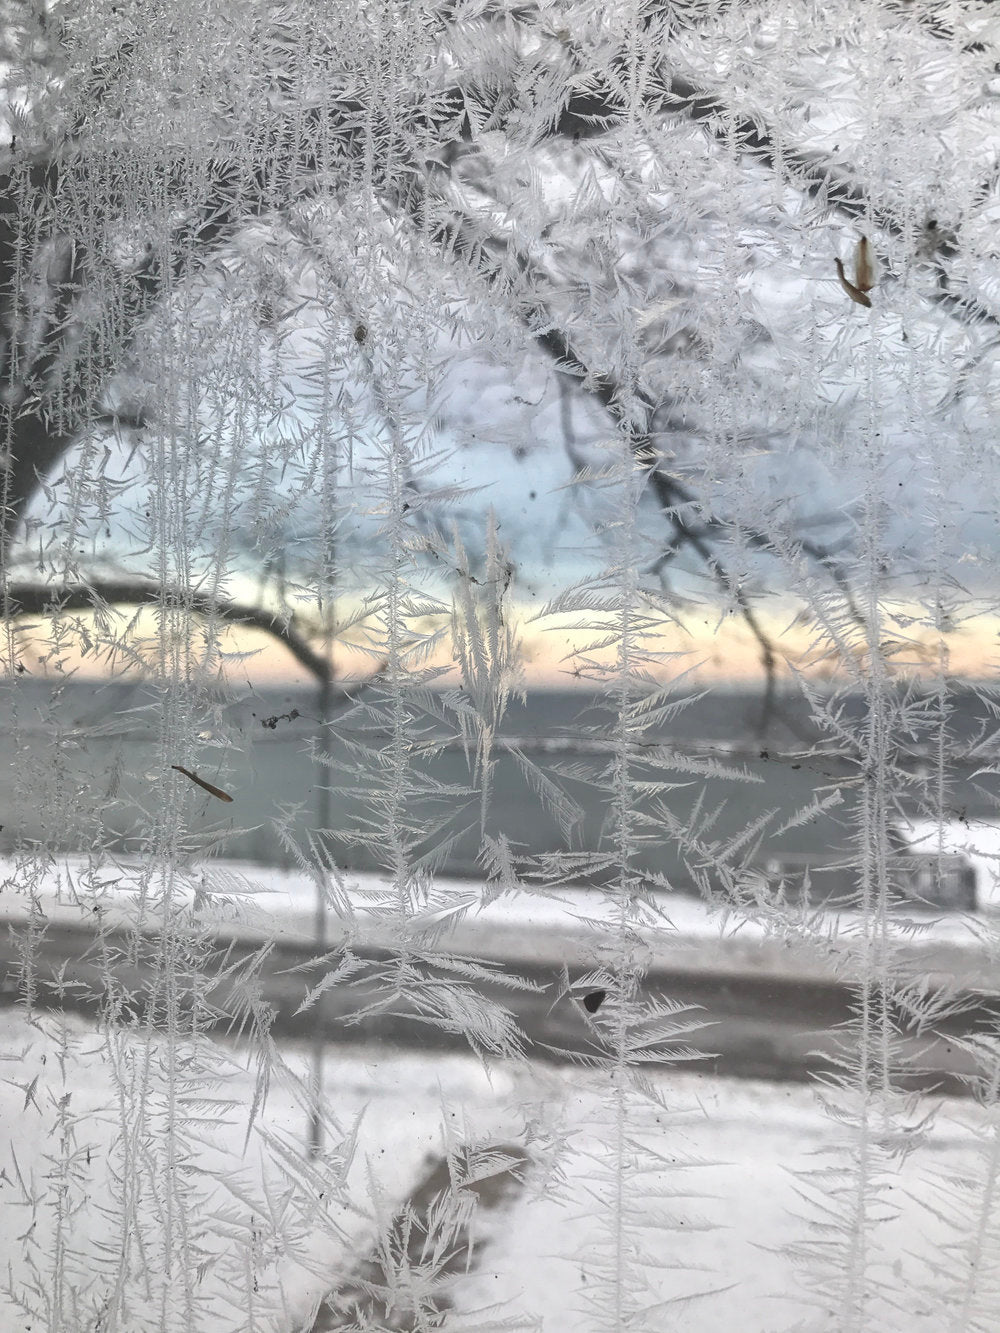 ice forming on the window texture